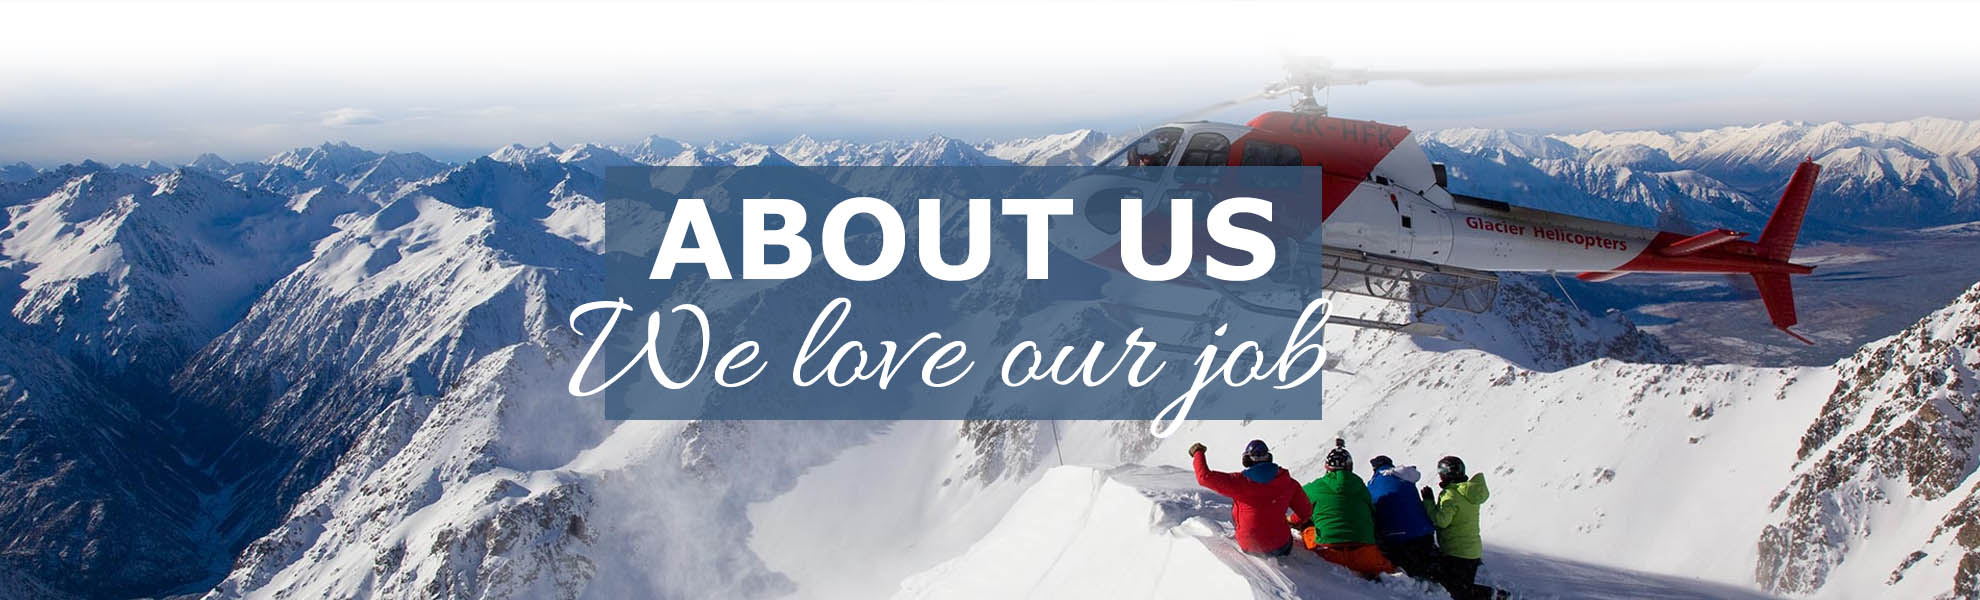 about canada ski experience team